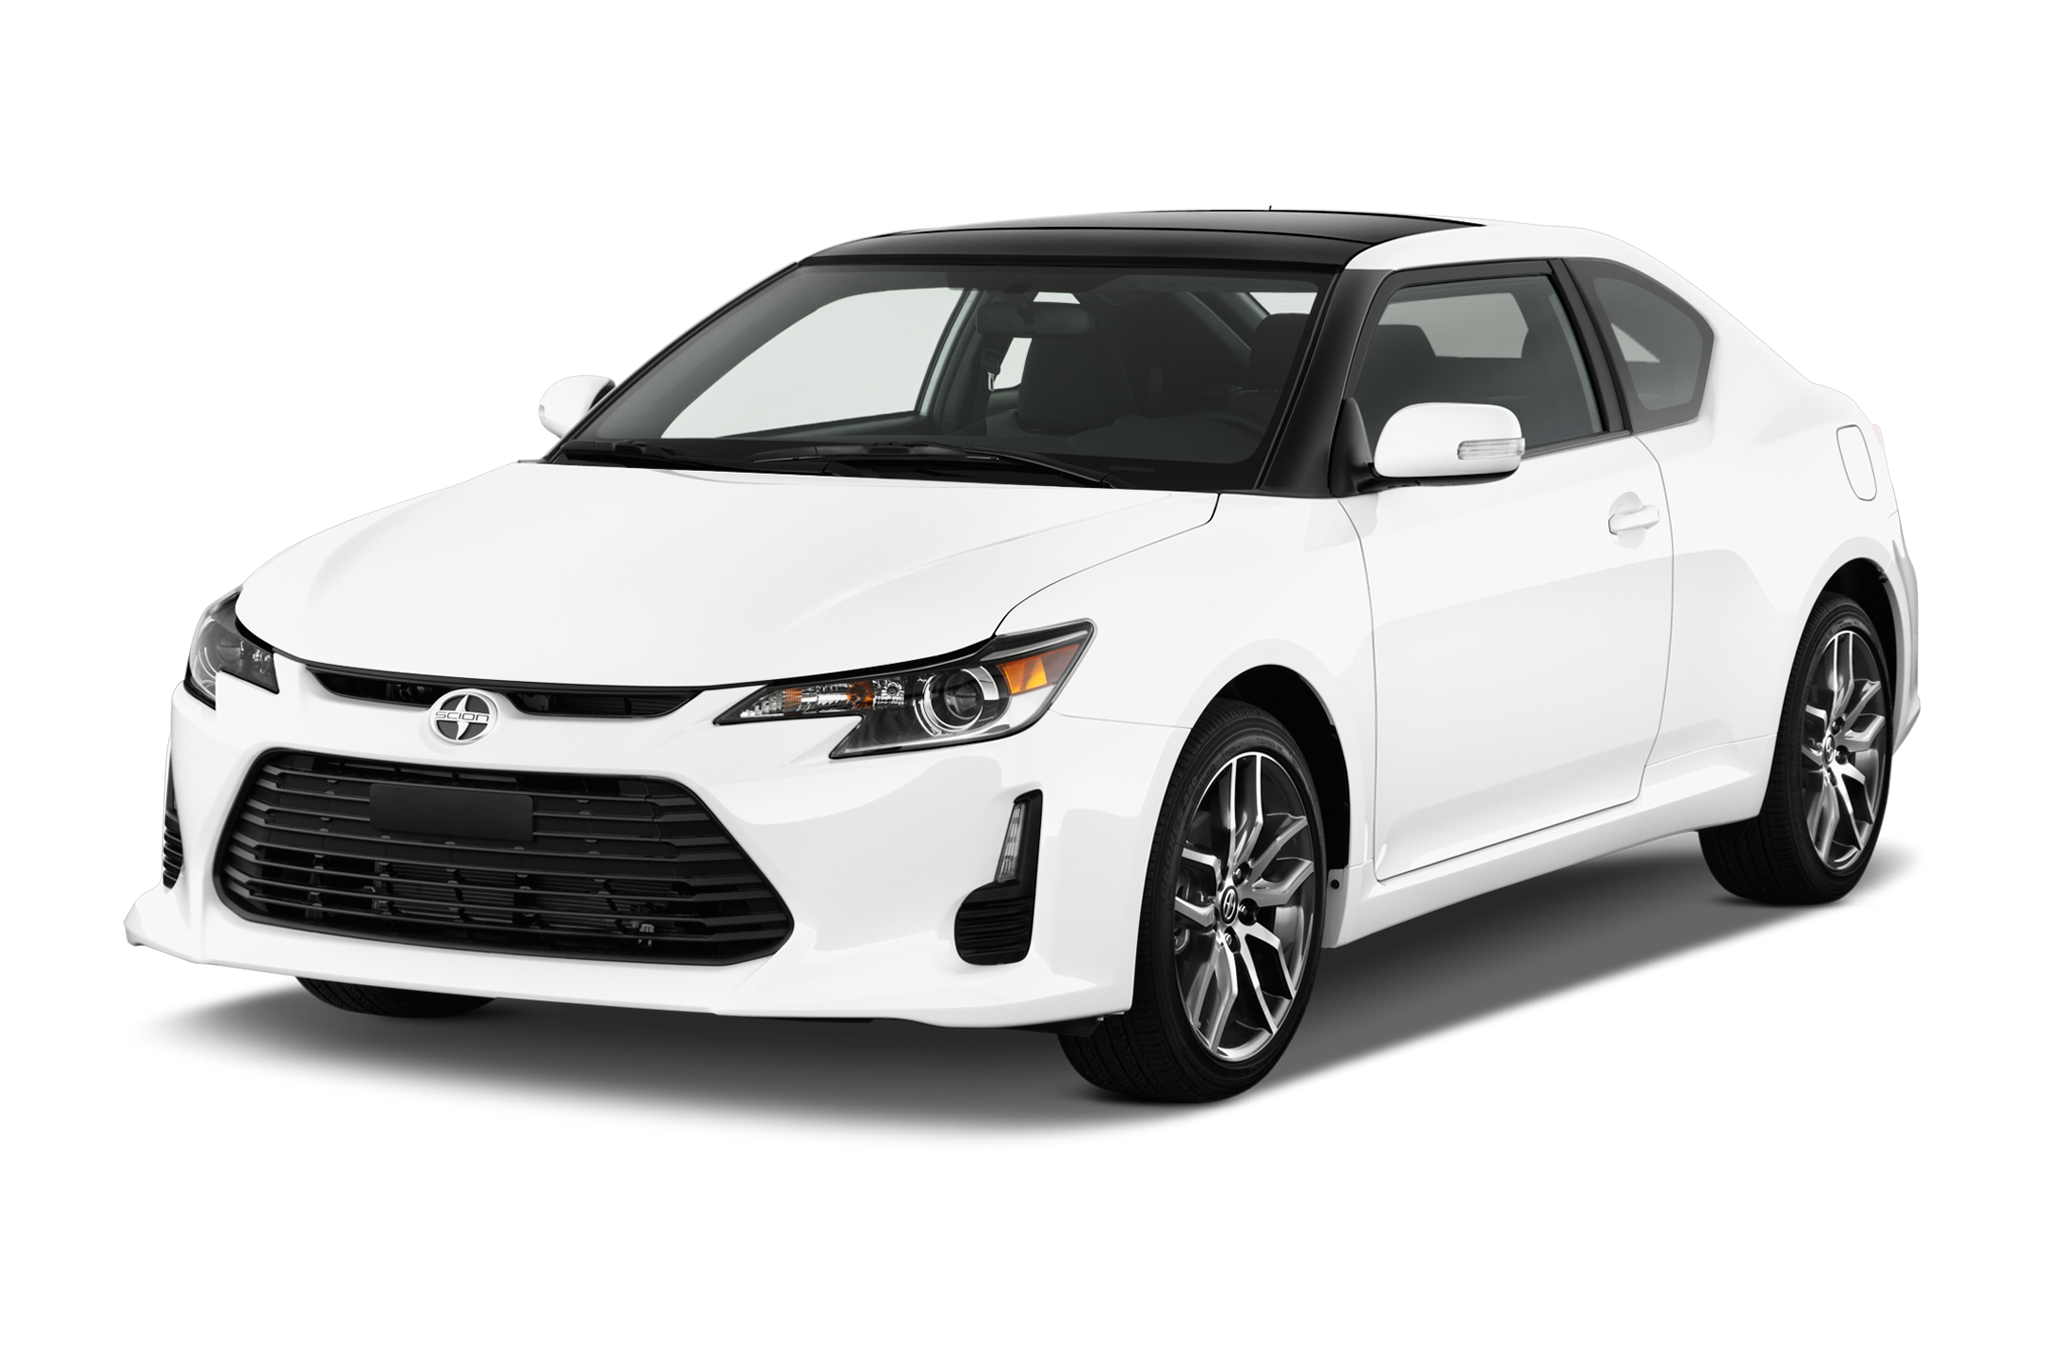 2015 scion tc release series 9 0 announced